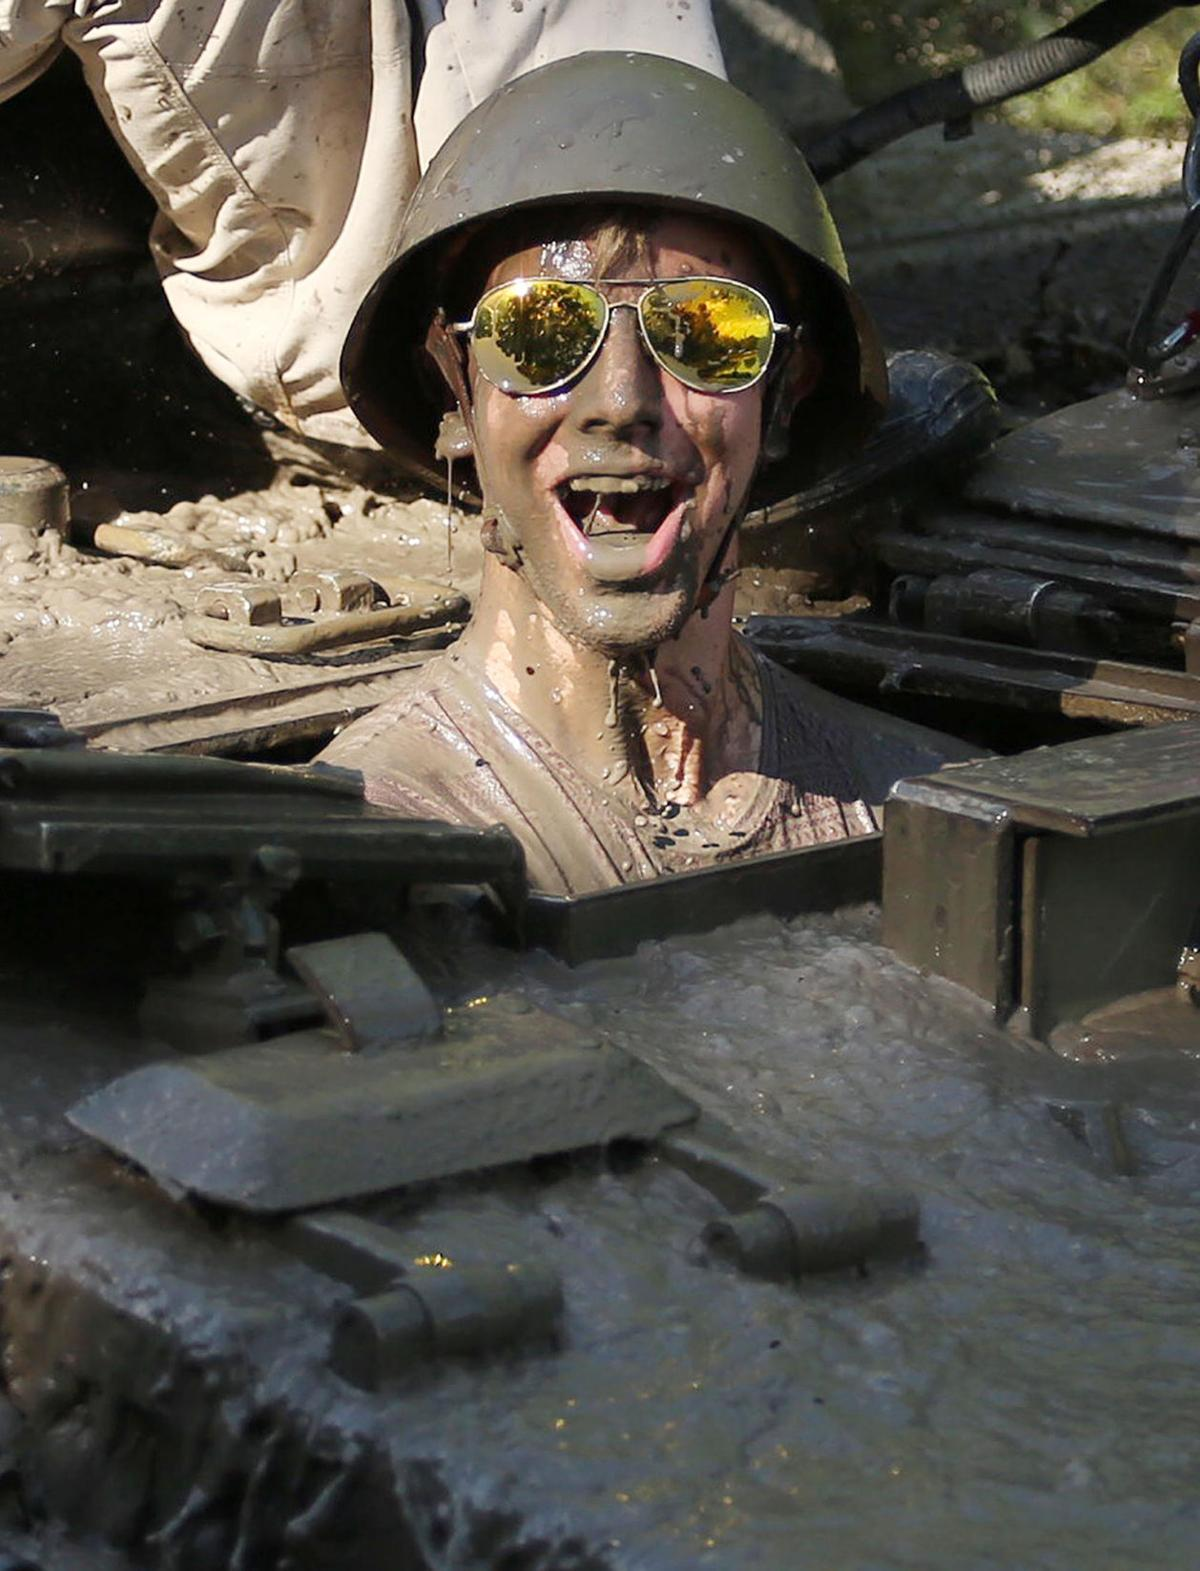 Reporter Patrick Connolly gets a face full of muddy water as he drives a tank at Tank America in Melbourne, Fla., on June 27, 2019.